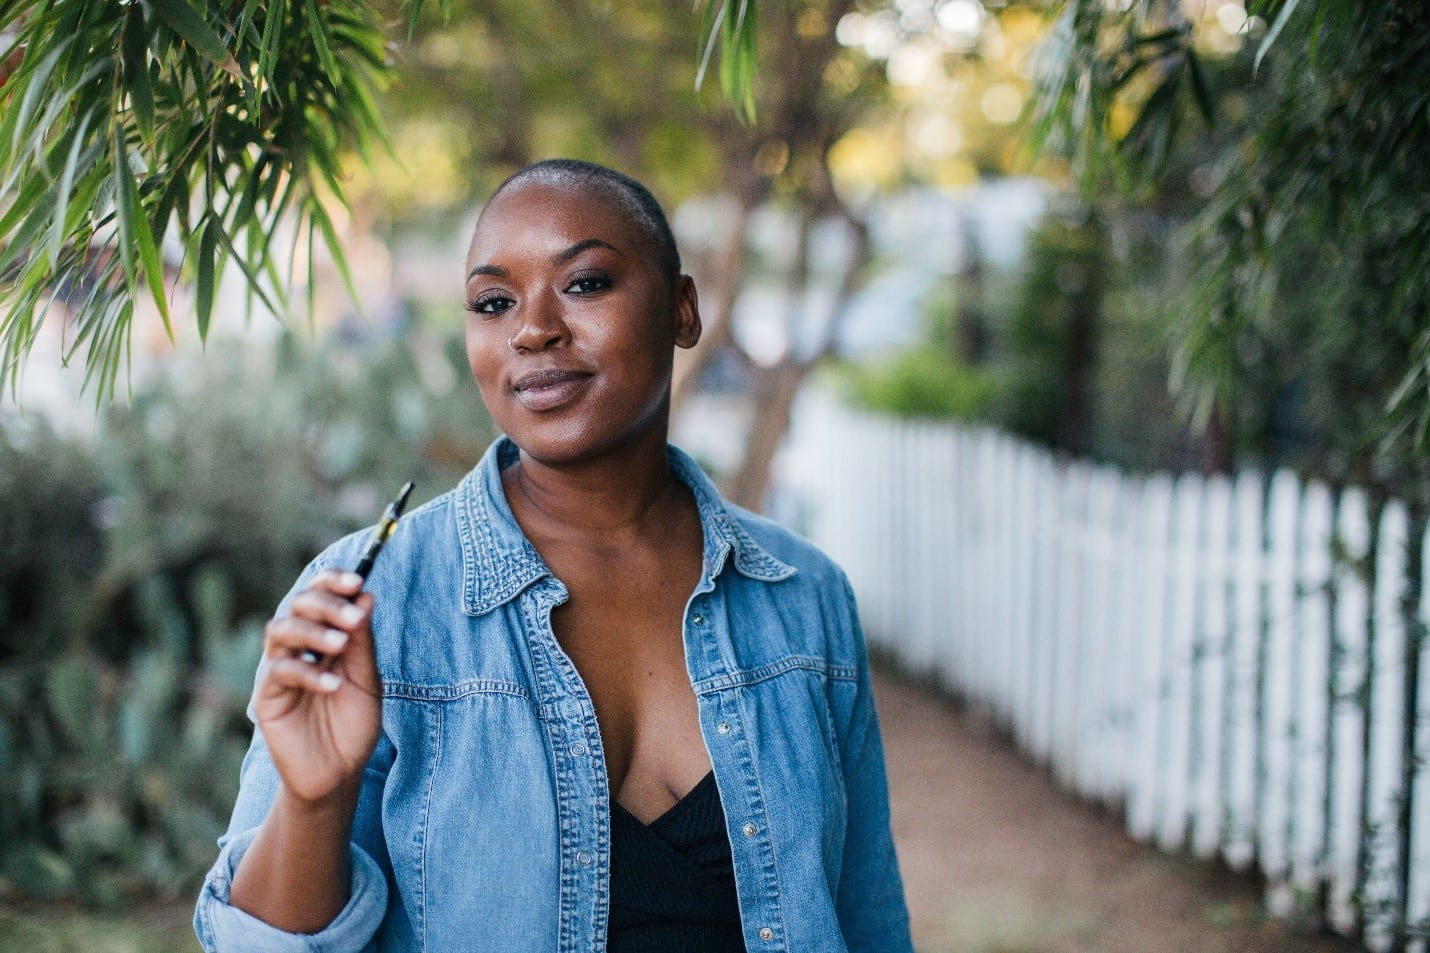 African American woman vaping CBD with an out of focus background.